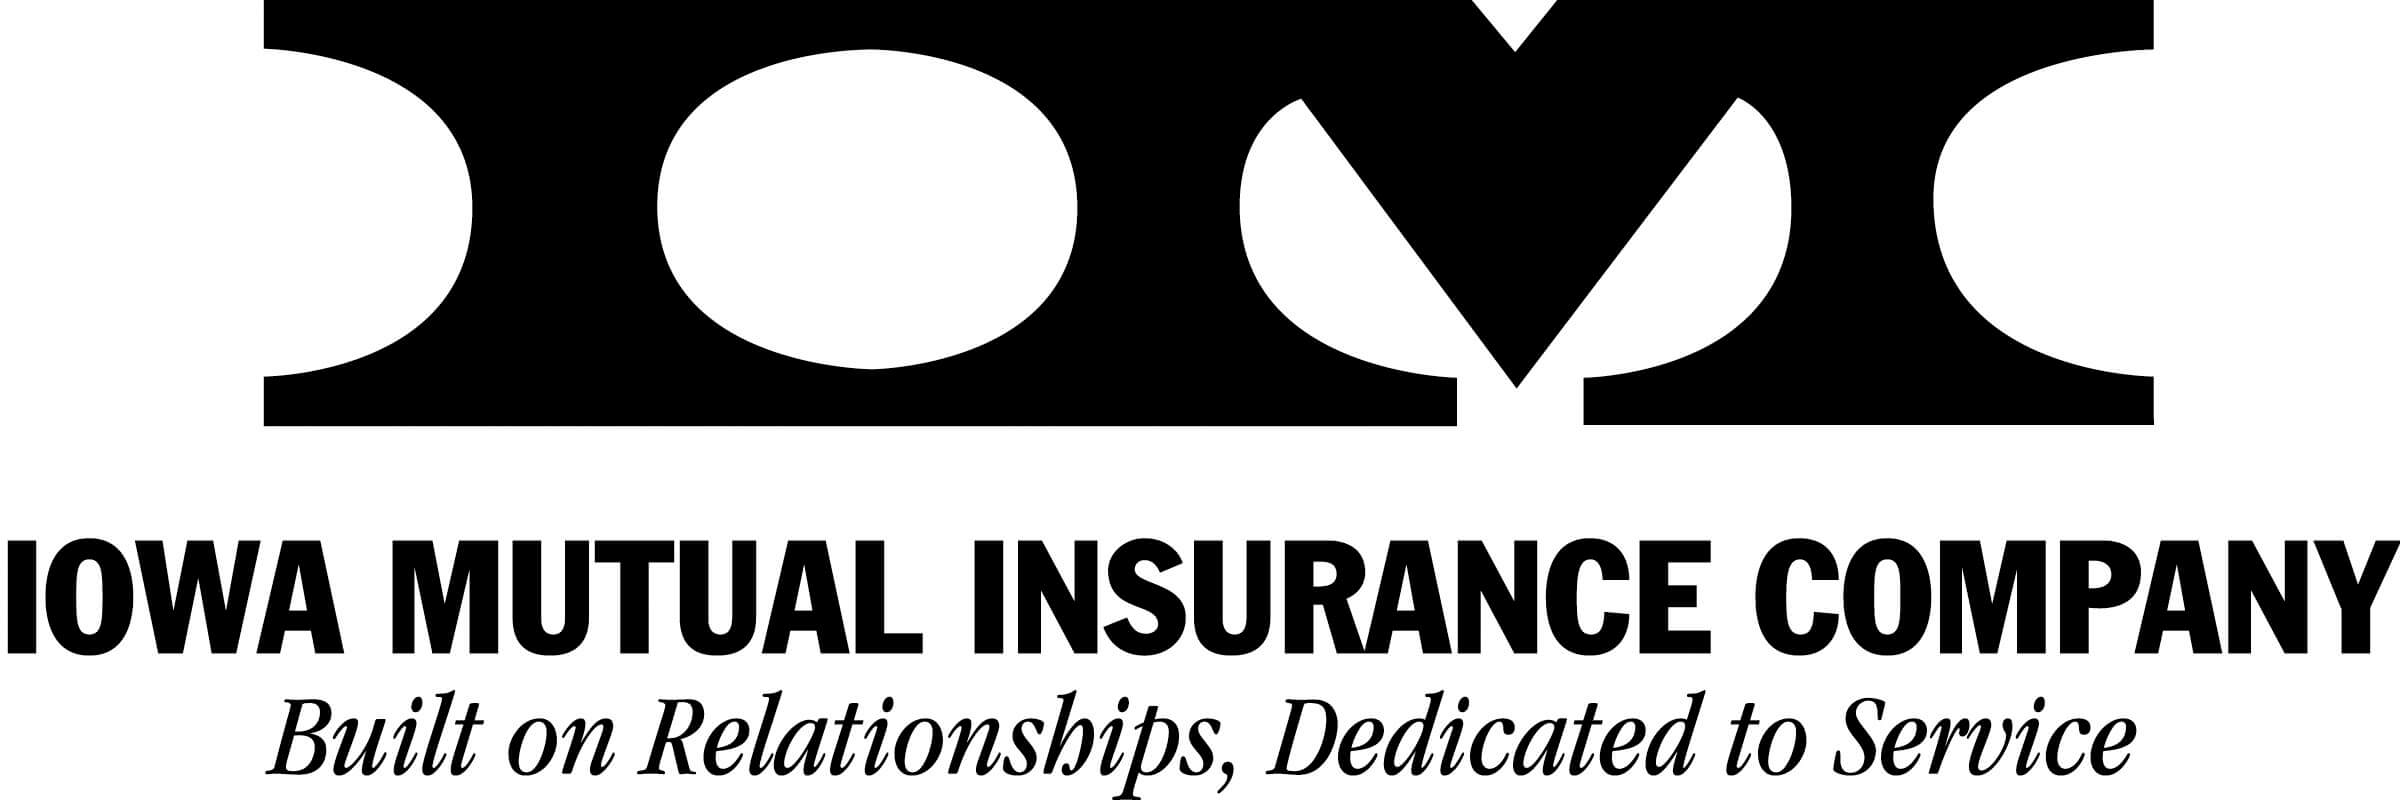 mutual insurance company of iowa Nationwide, the nationwide n and eagle and other marks displayed on this page are service marks of nationwide mutual insurance company, unless otherwise disclosed ©2018 nationwide mutual insurance company.